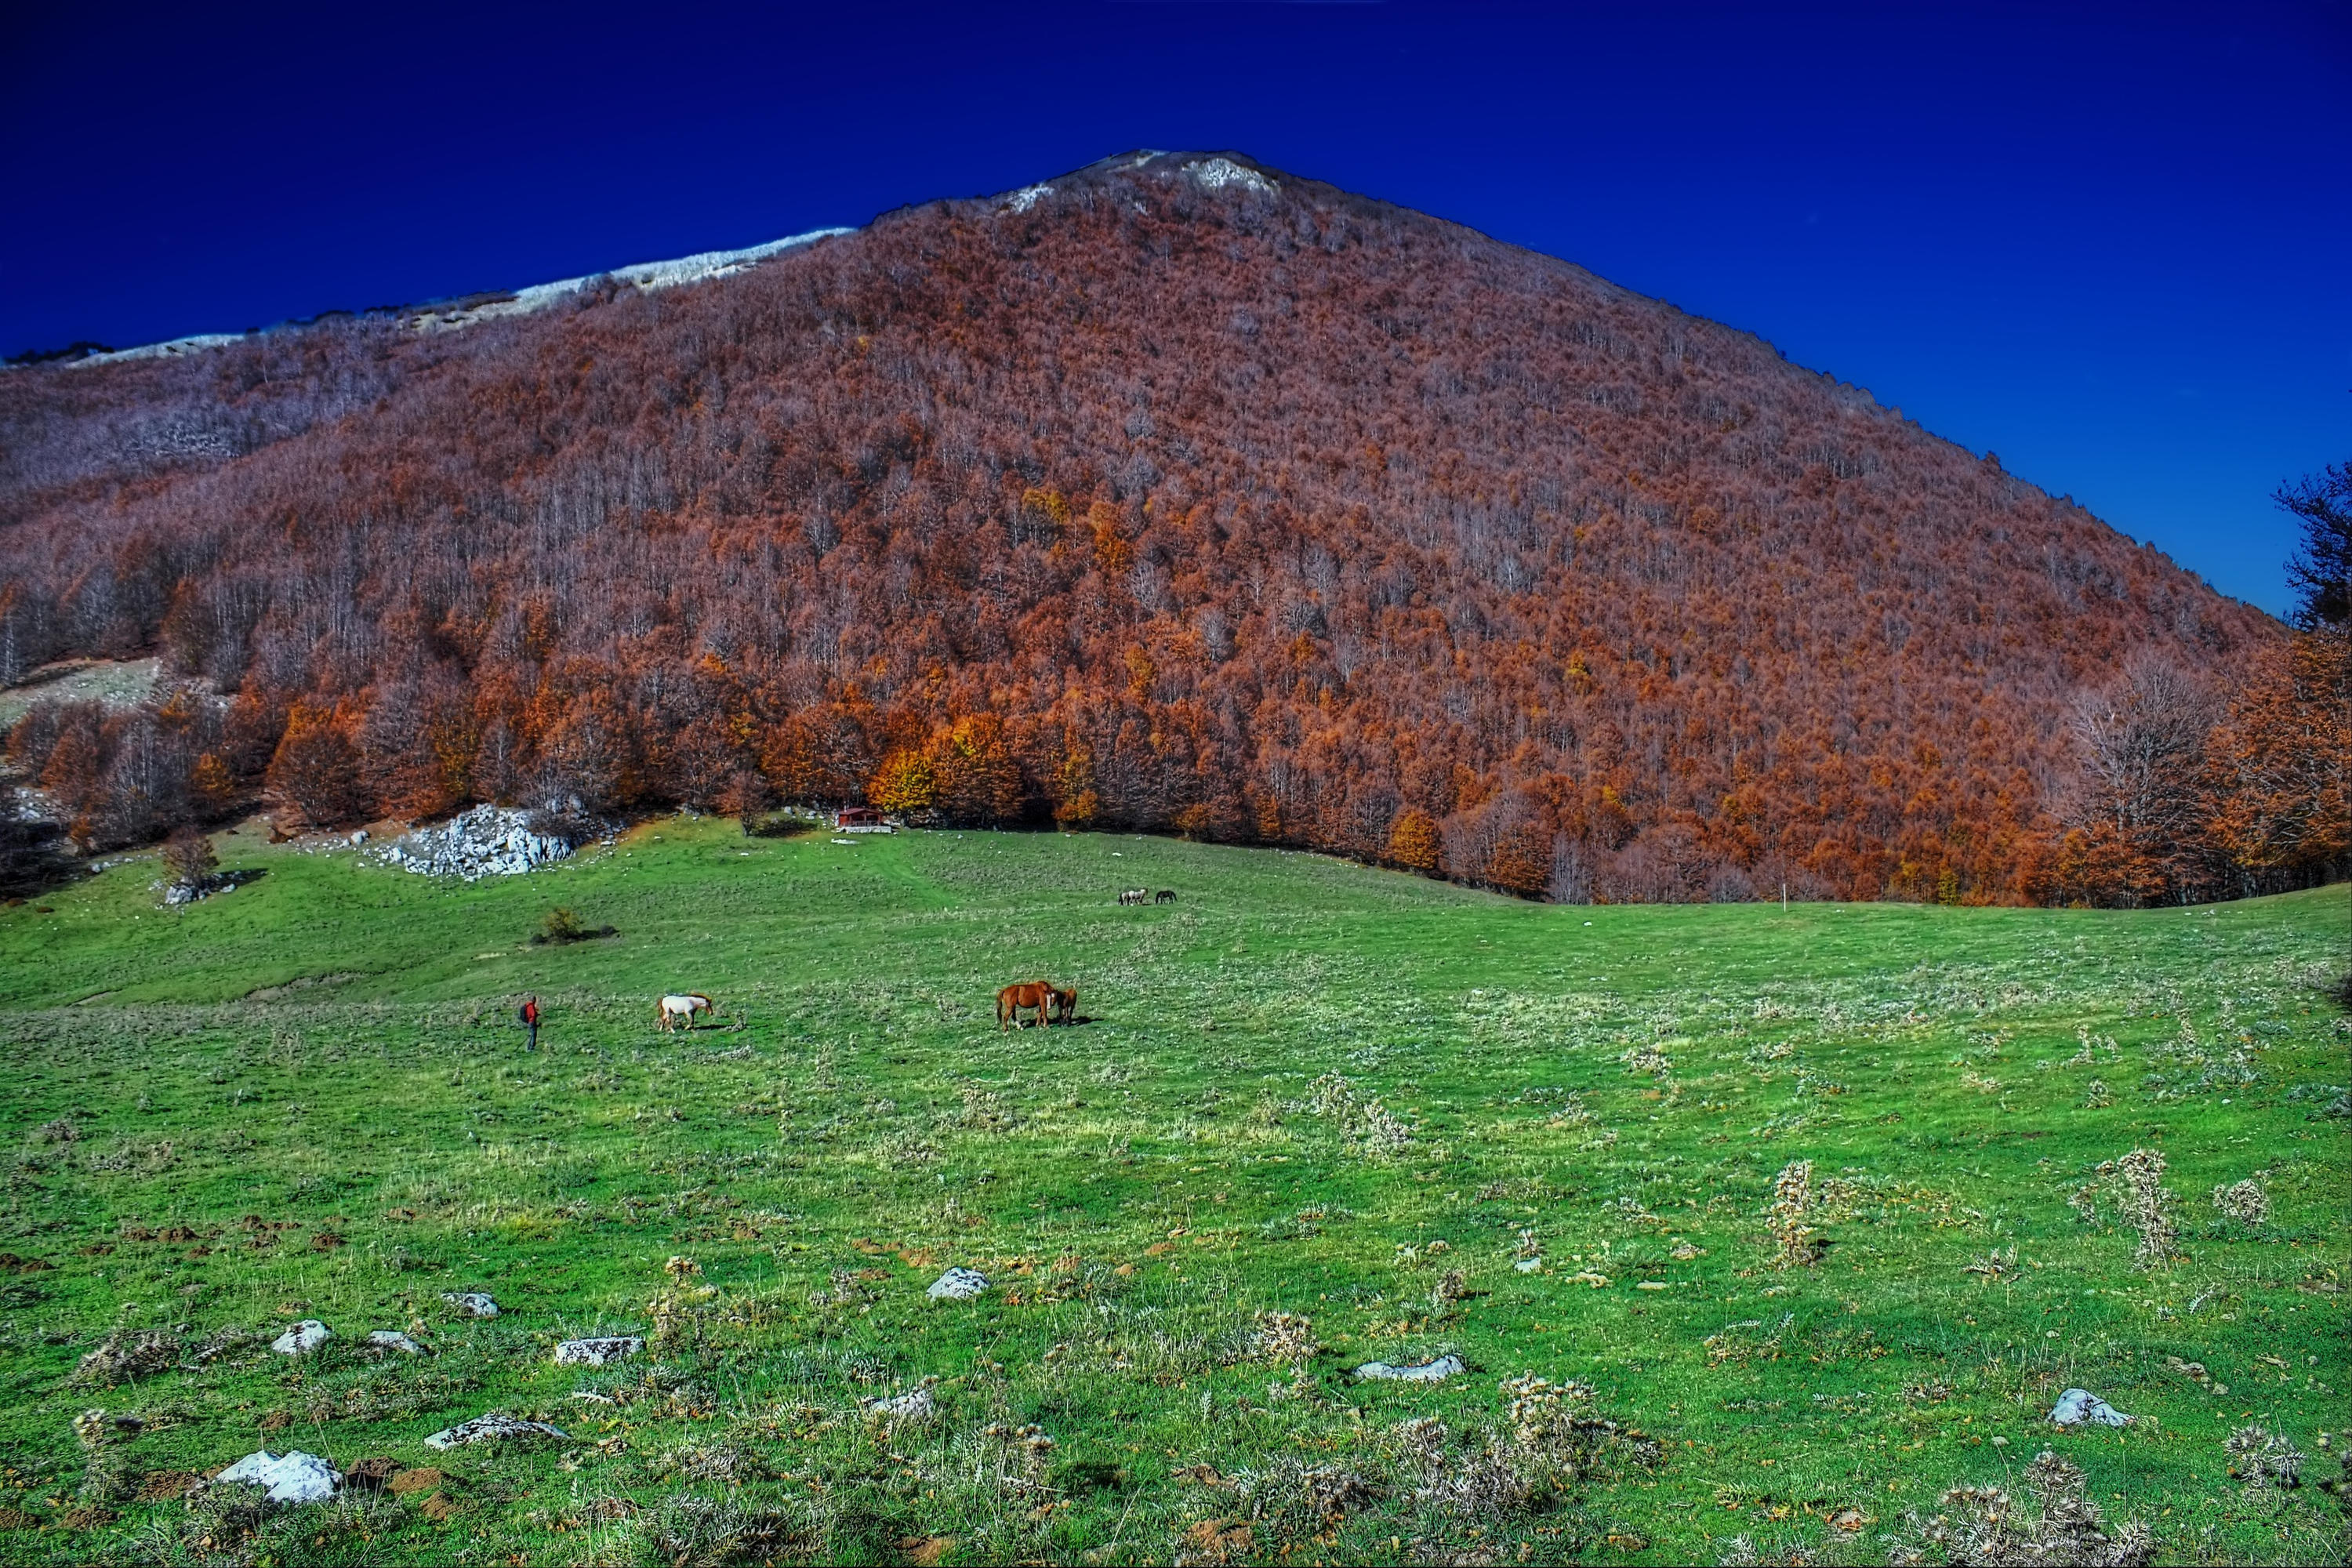 Mountain - HDR by yoctox